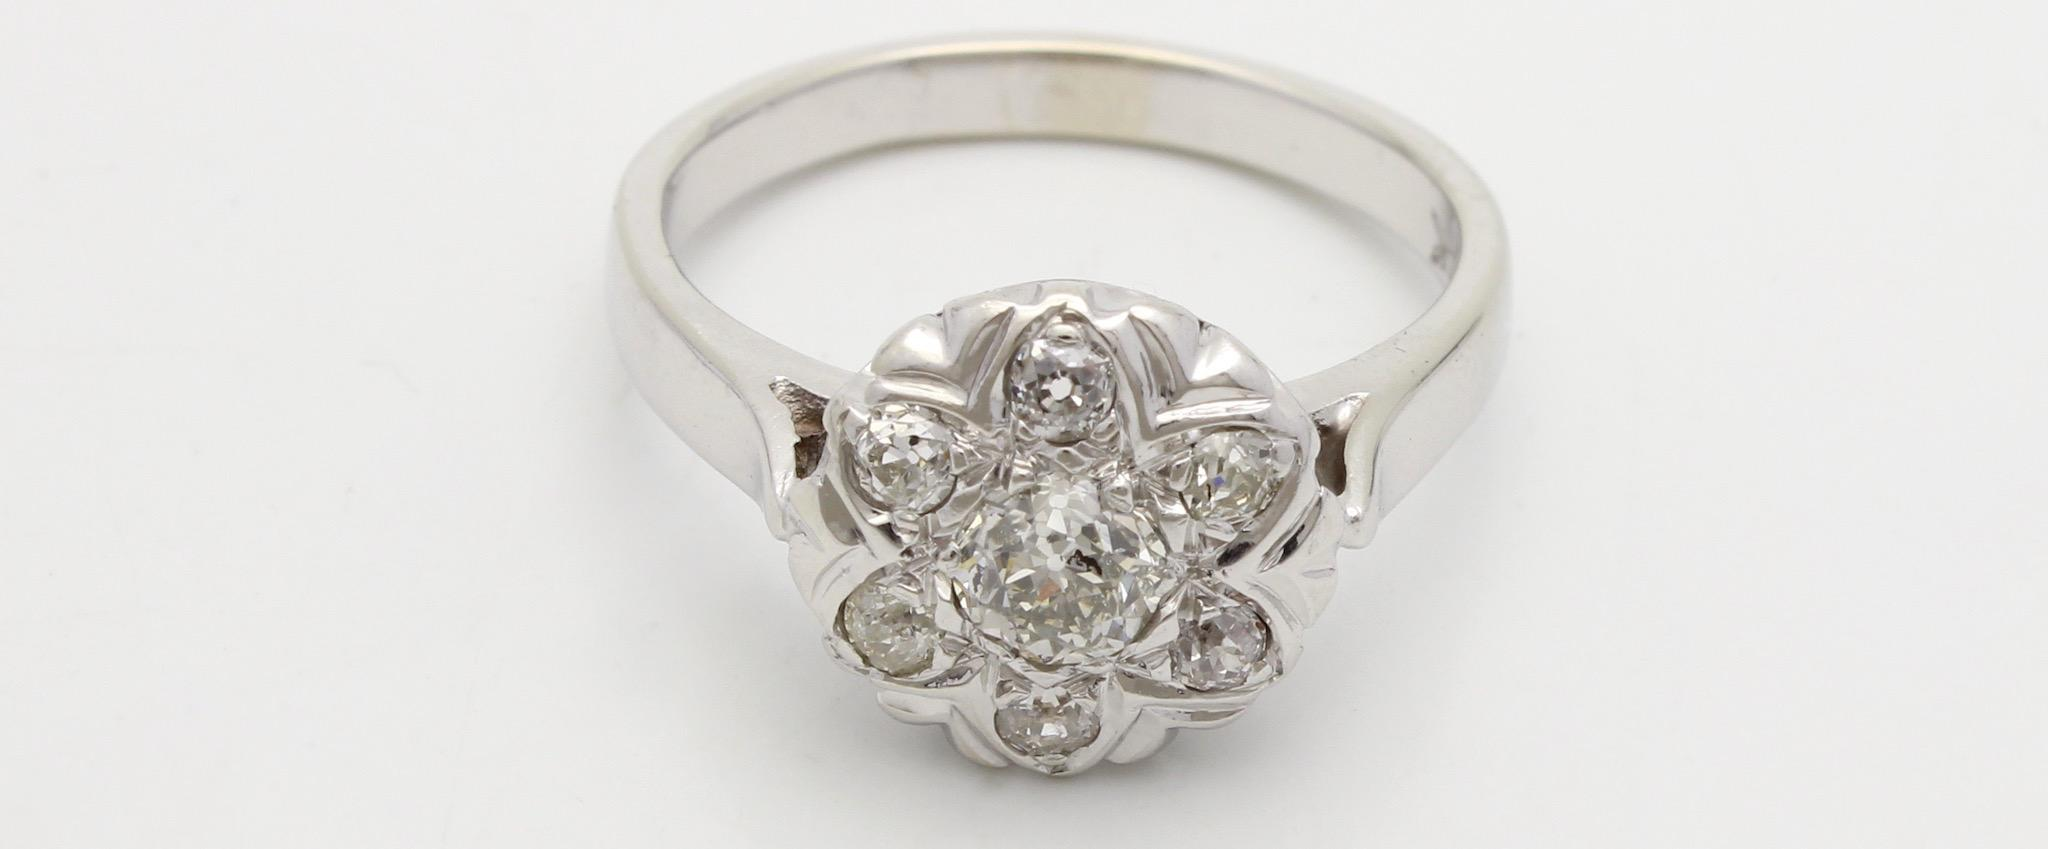 Vintage Diamond Floral Engagement Ring 14K White Gold from anessajoygems on R